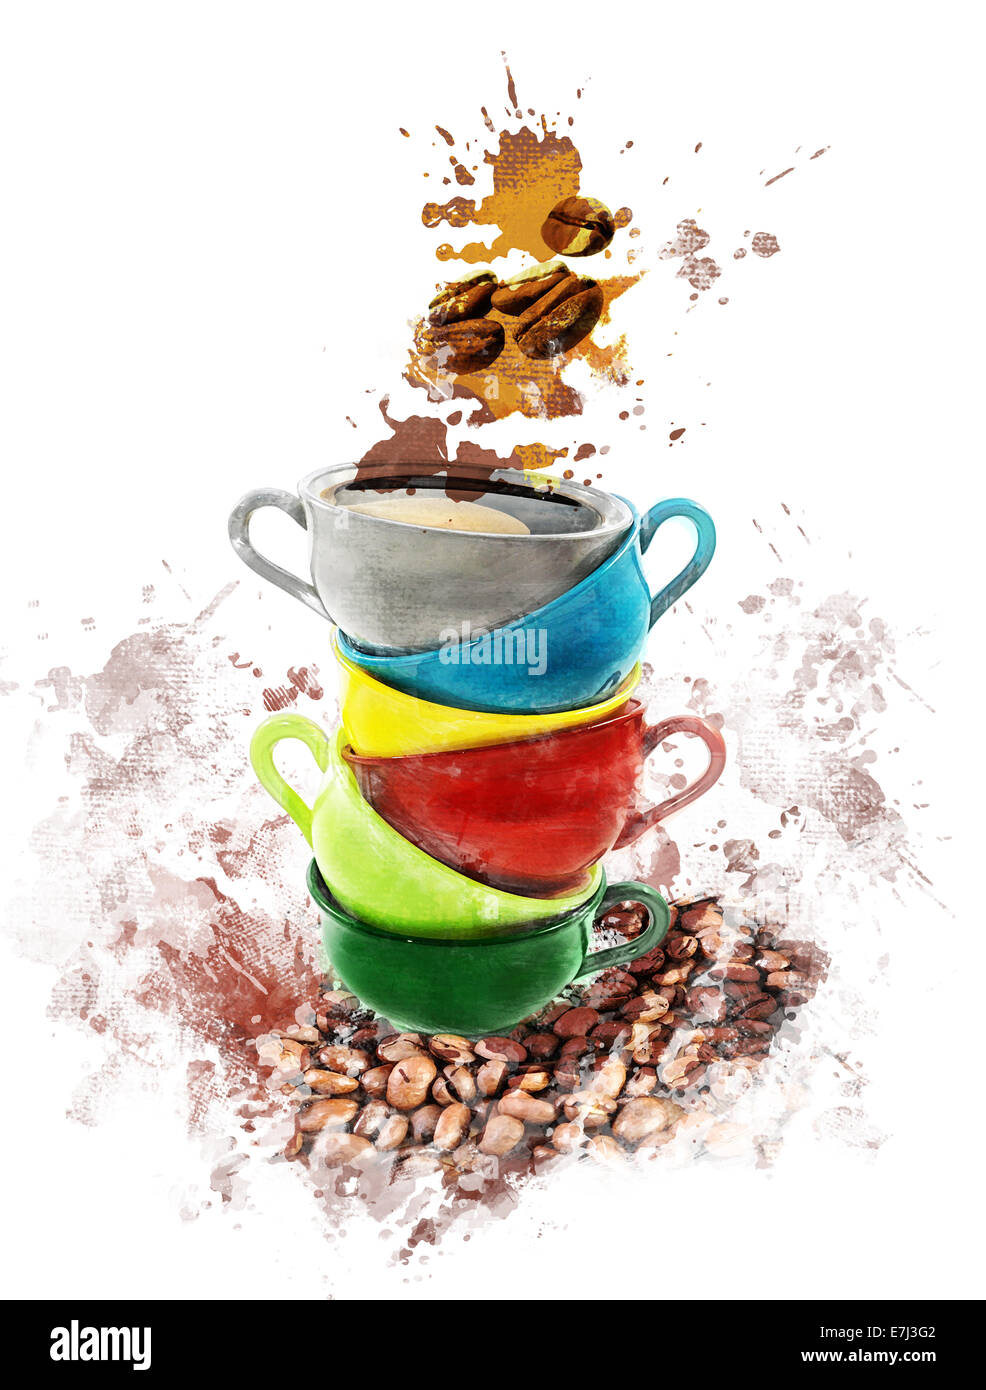 Watercolor Digital Painting Of Coffee Cups Stock Photo: 73542002 - Alamy